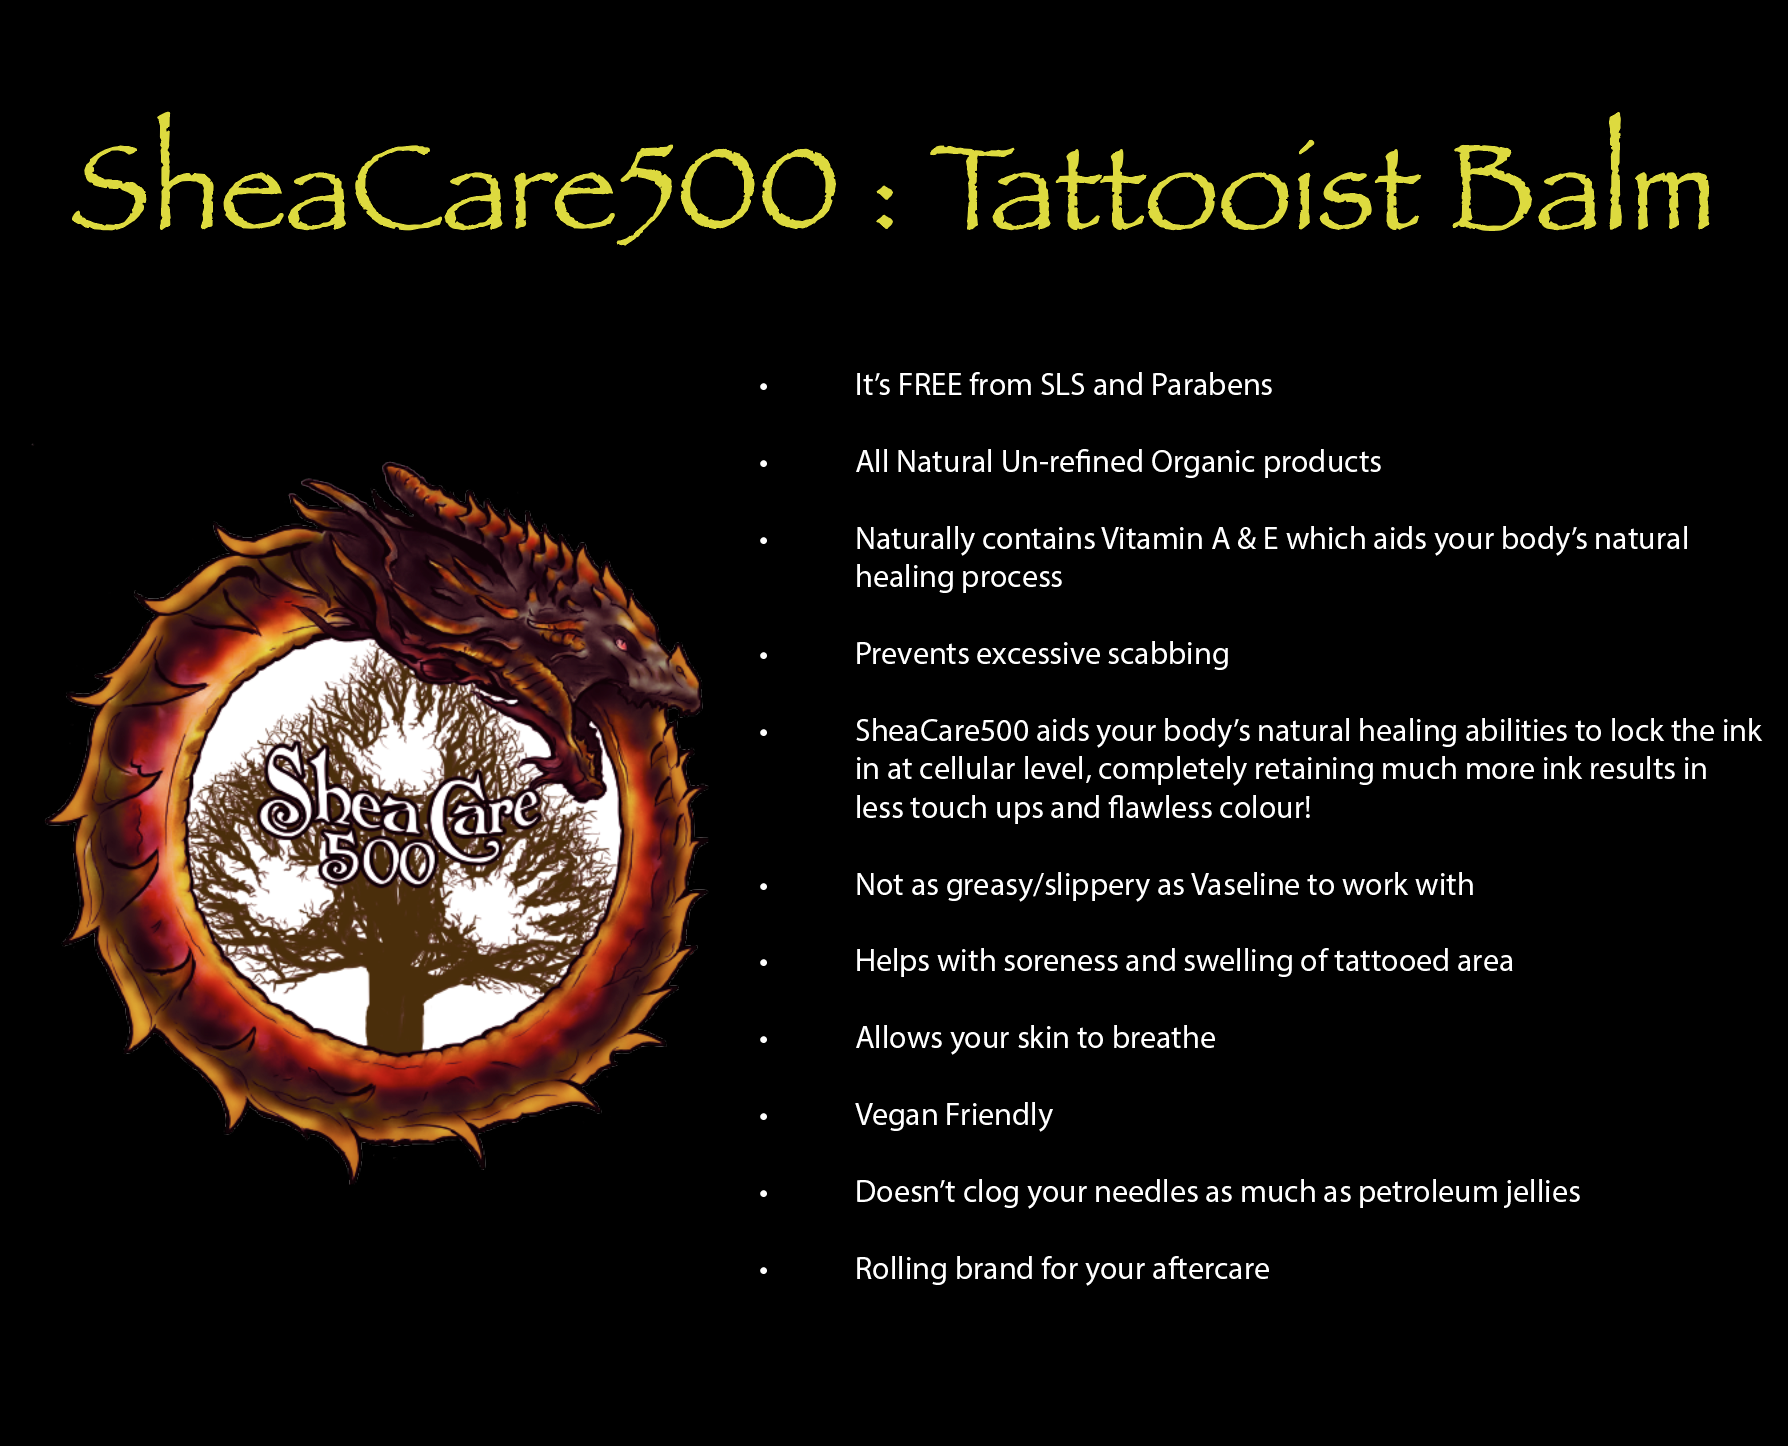 SheaCare500 Tattooist Balm